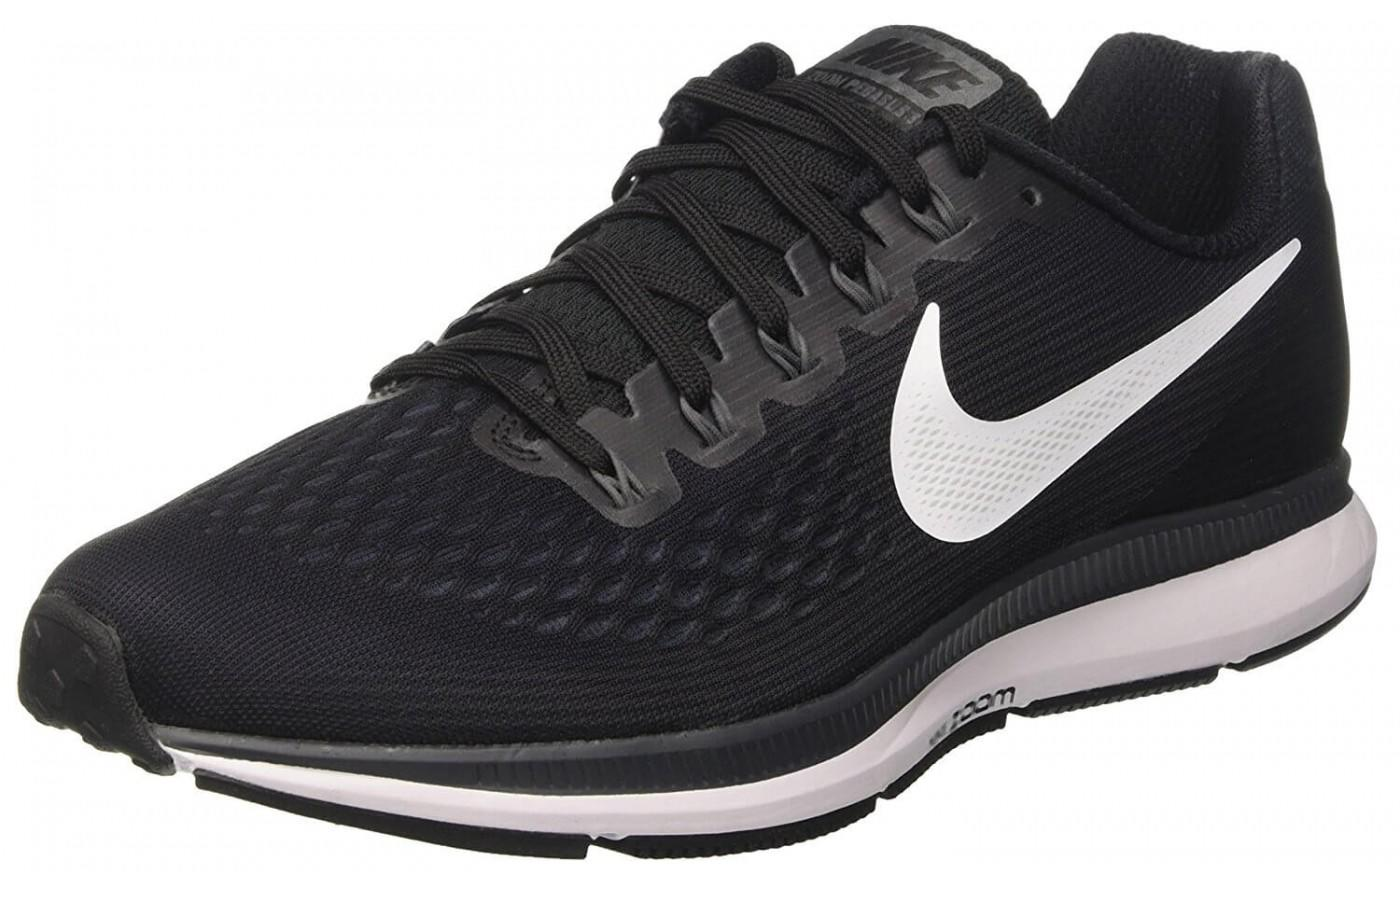 c8323b63b3b3 the upper of the Nike Air Zoom Pegasus 34 is made of breathable Flymesh ...